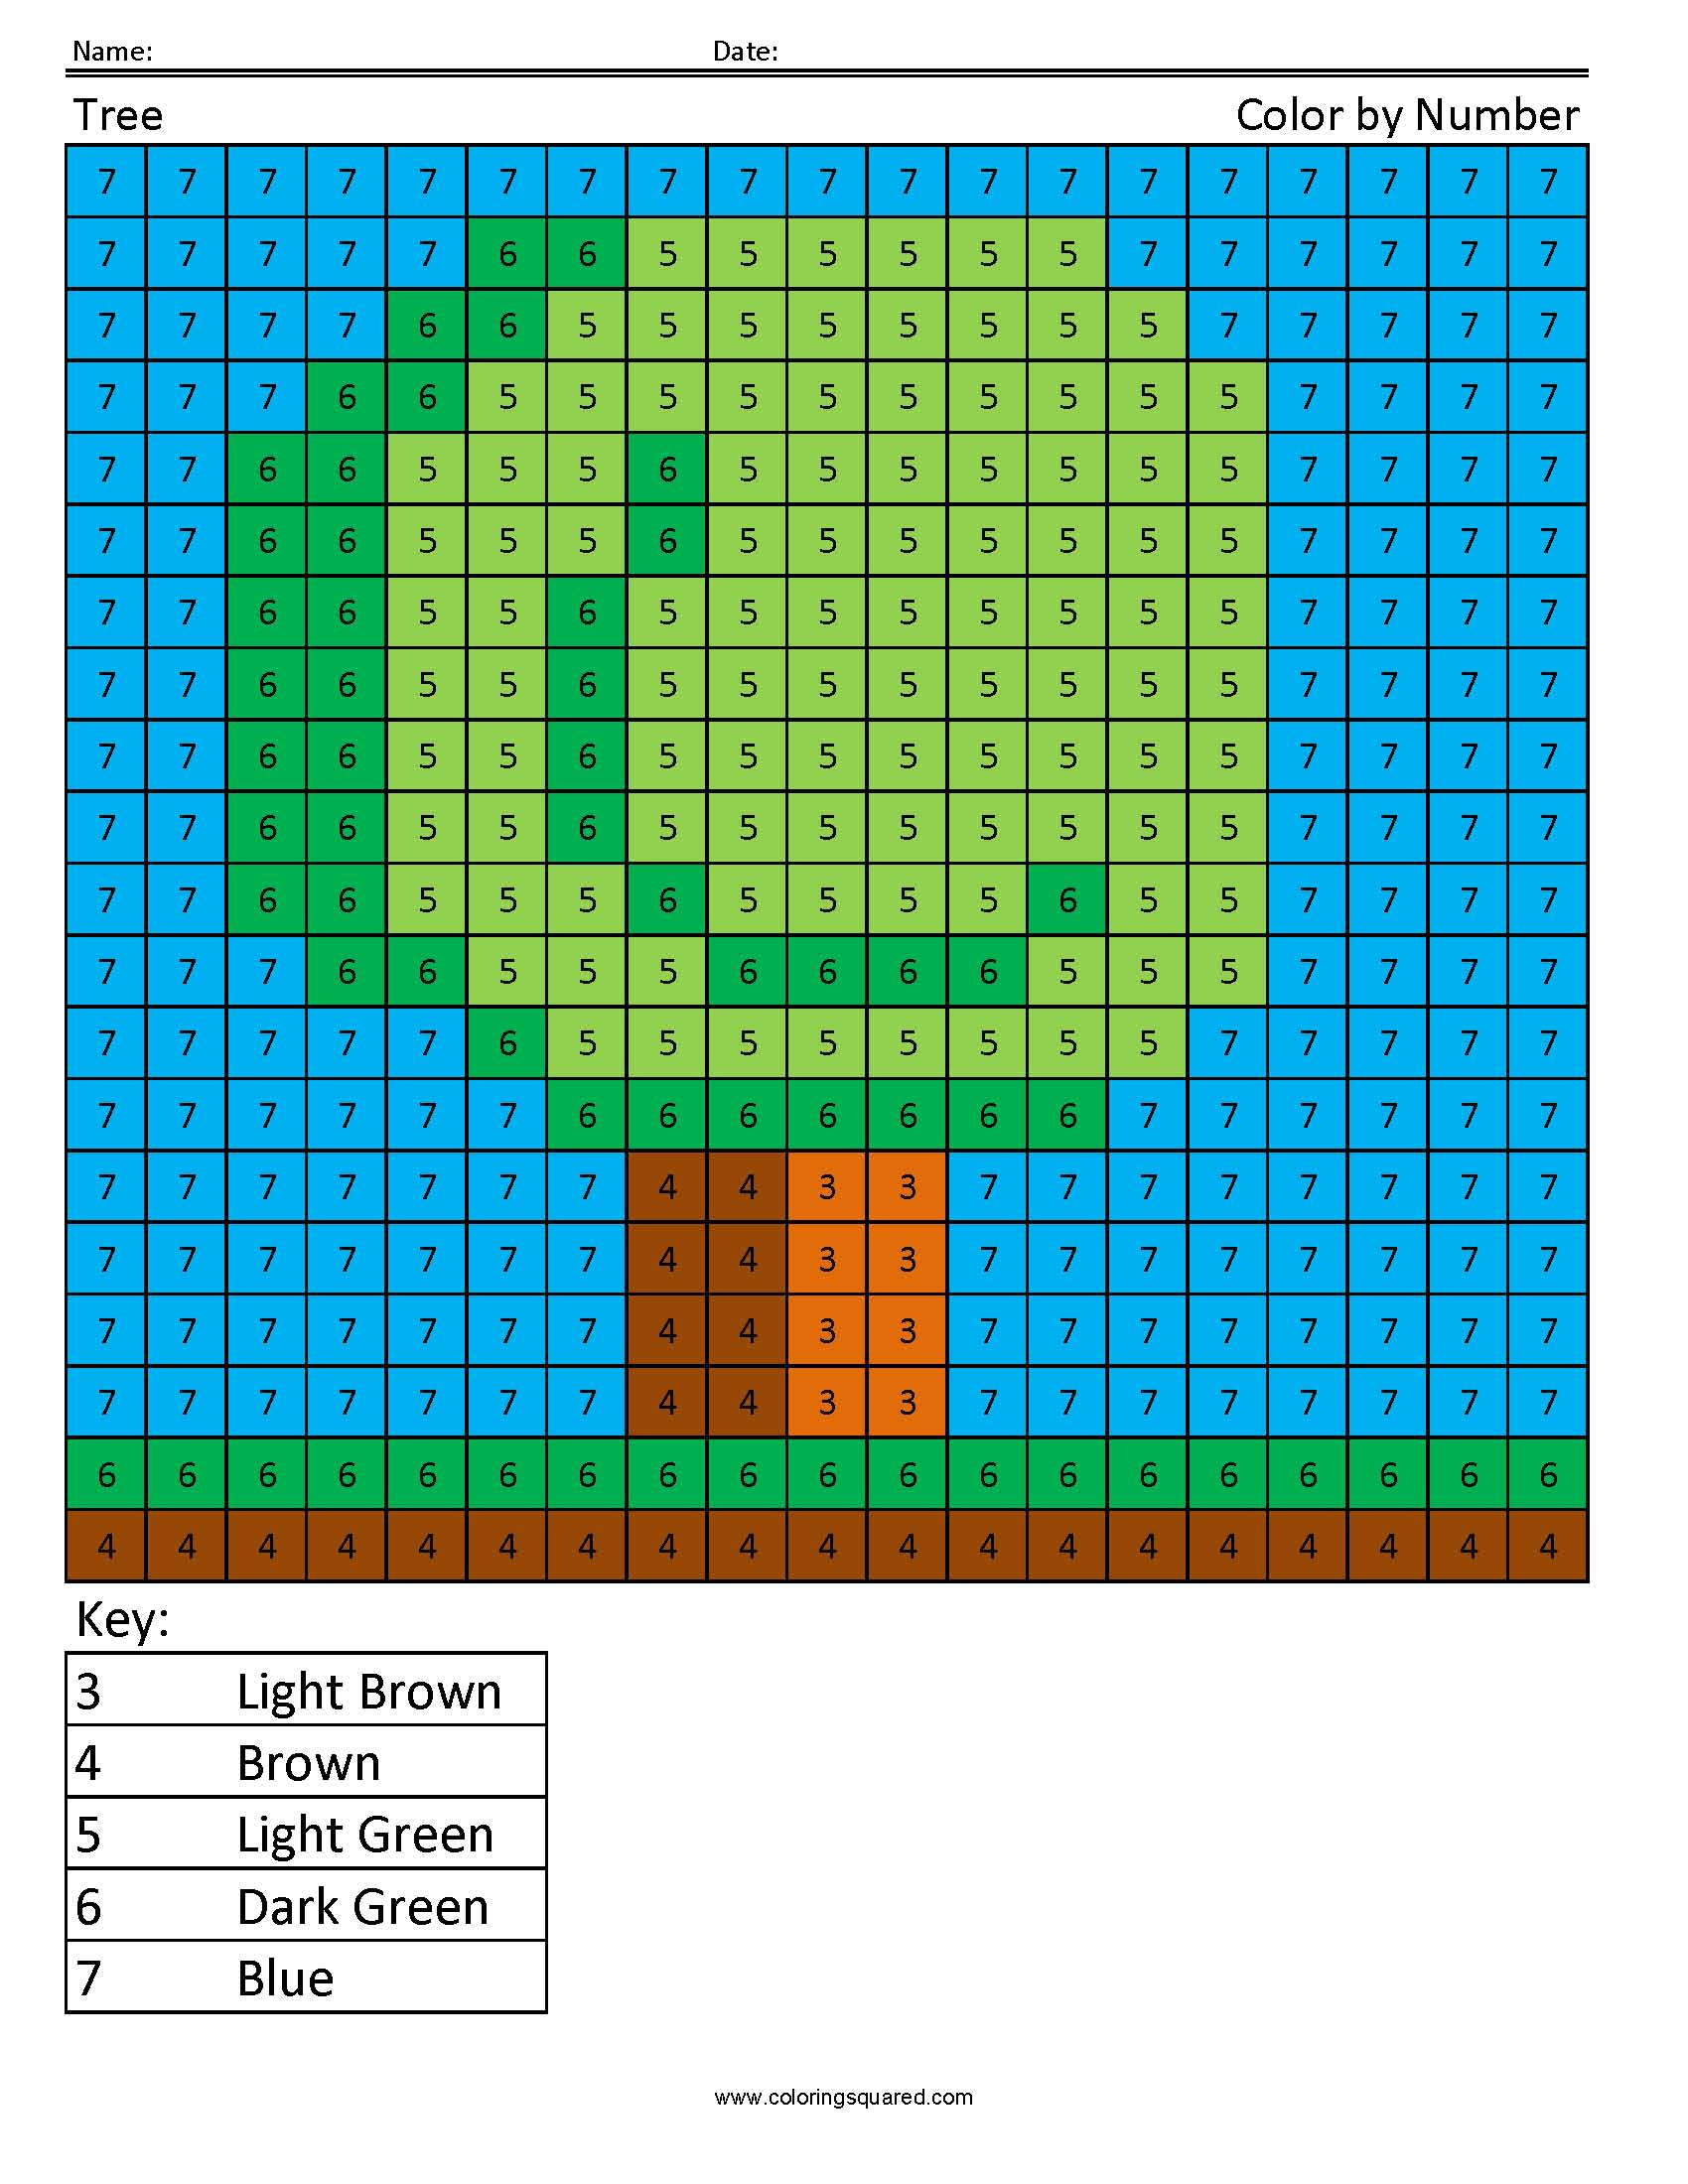 Tree Color By Number